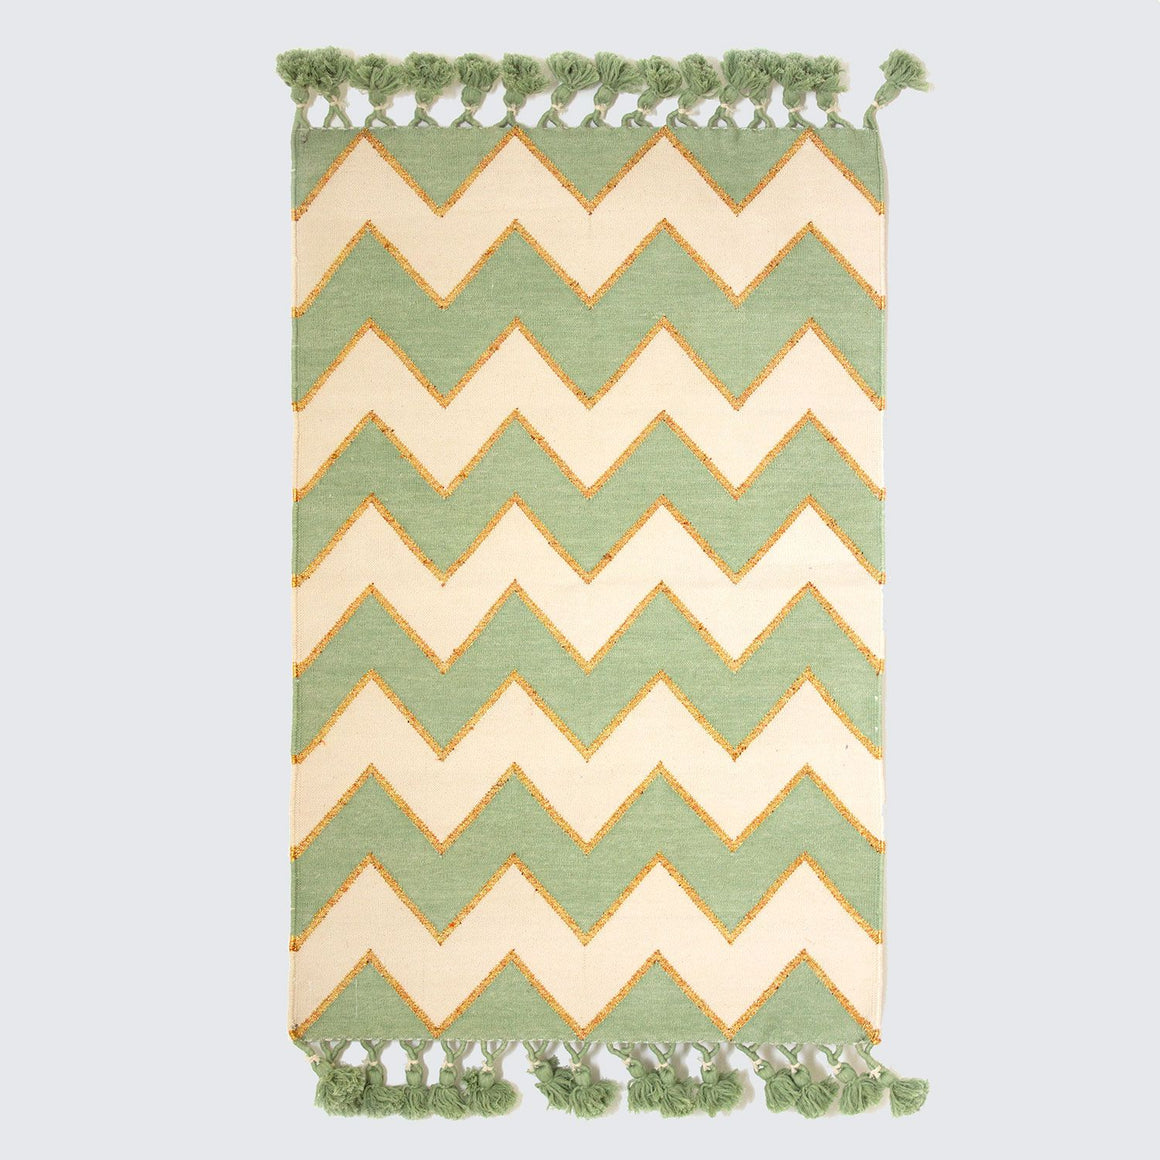 Indian Hand Woven Mint Zig Zag Rugs '90cm x 150cm'